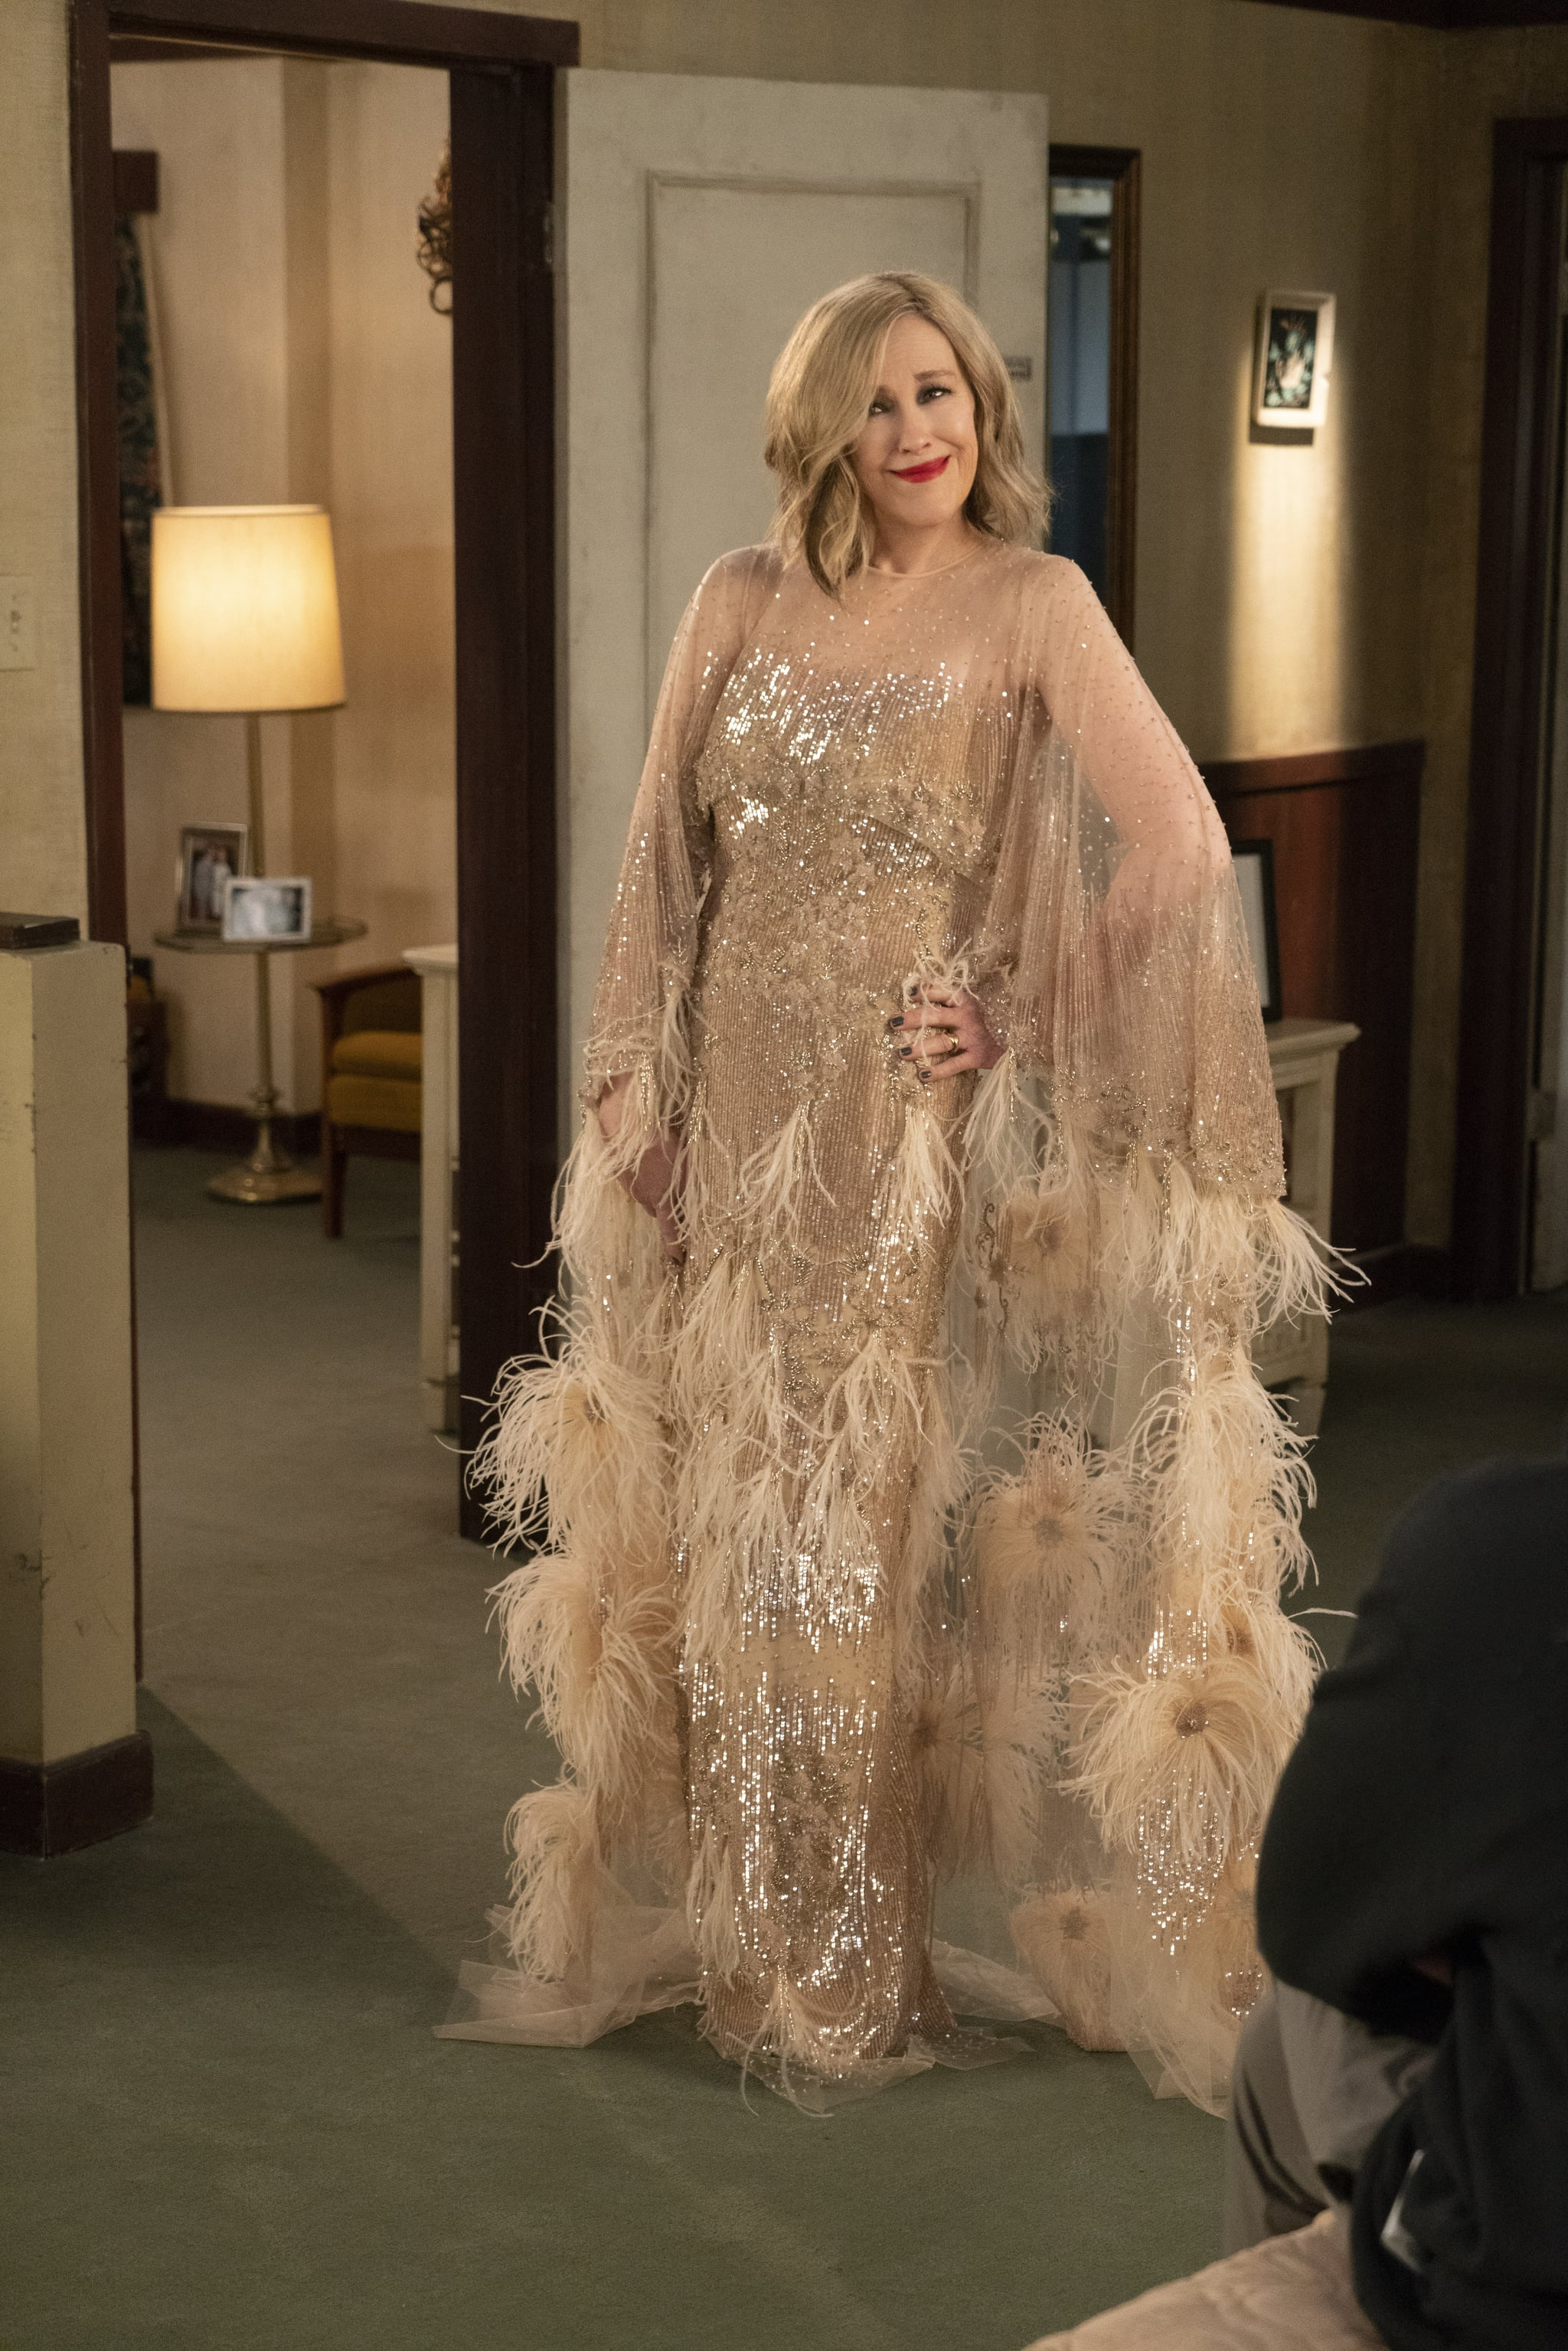 Moira S Best Looks On Schitt S Creek Popsugar Fashion